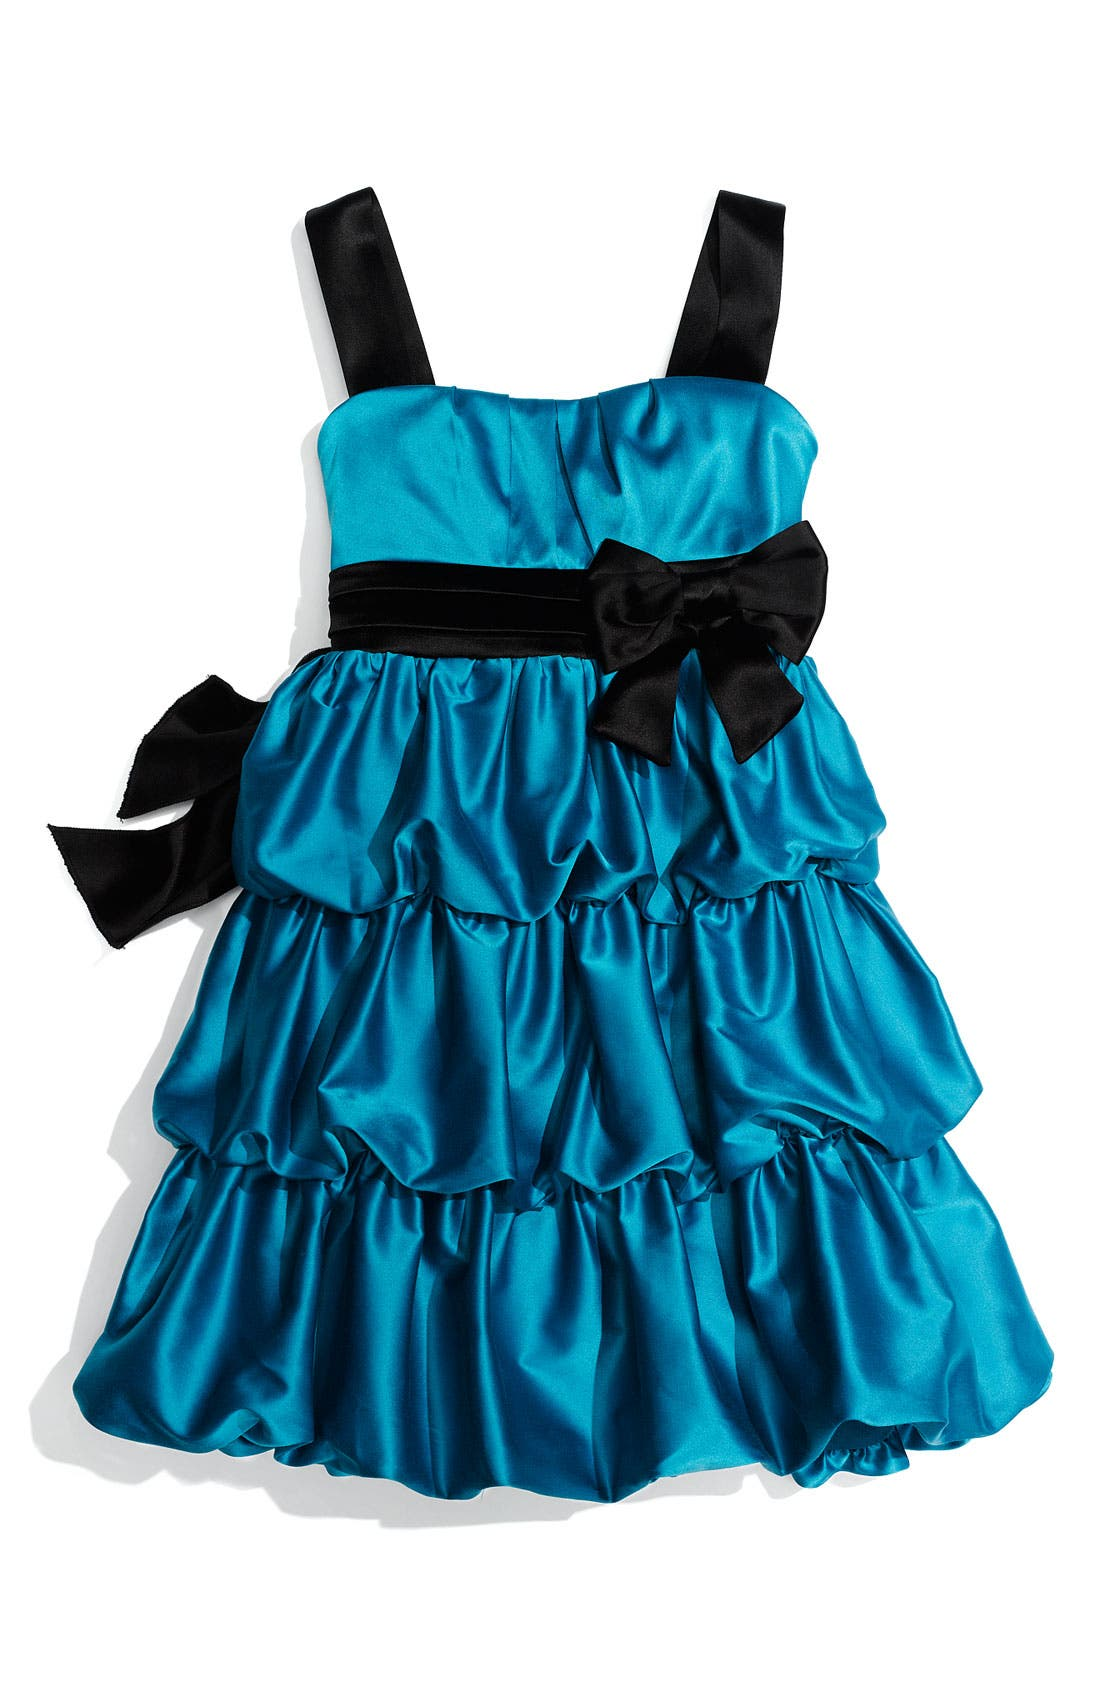 Alternate Image 1 Selected - Roxette Puff Tier Dress (Big Girls)